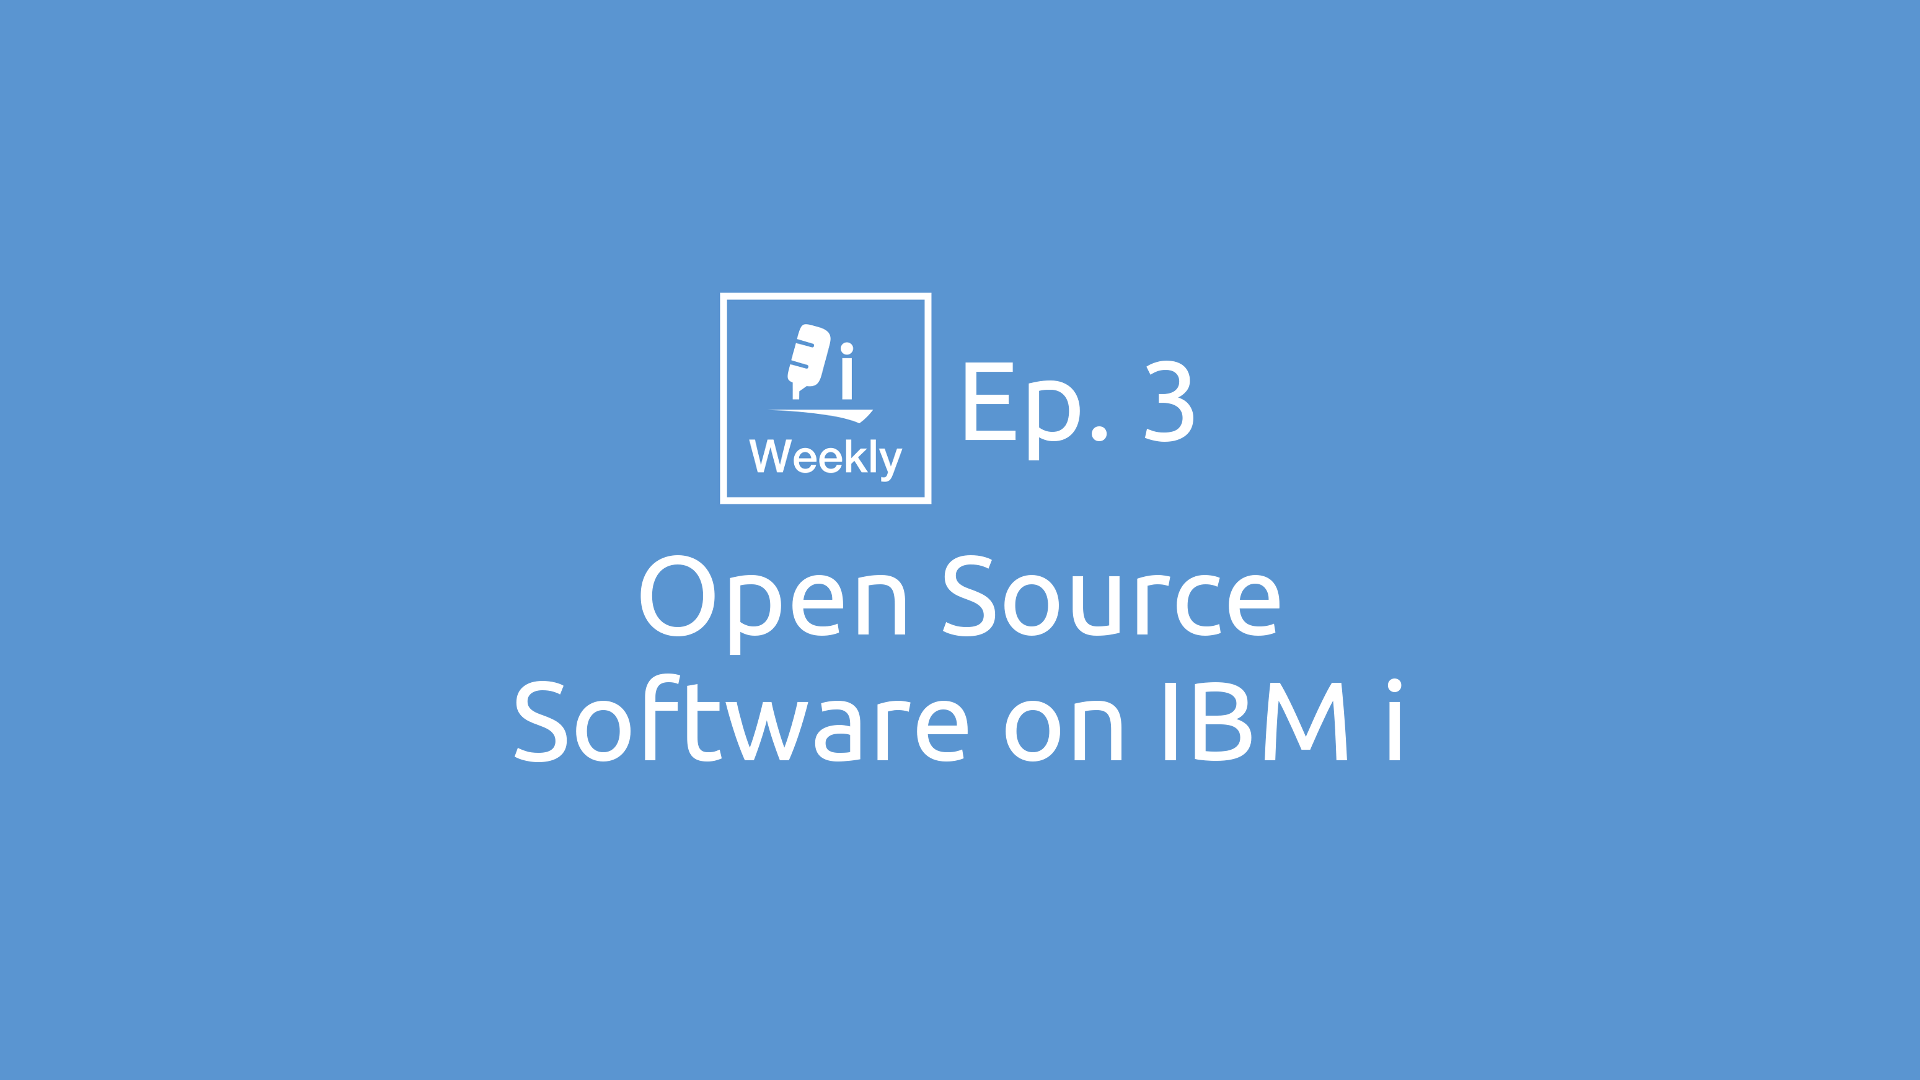 Open Source Software on IBM i